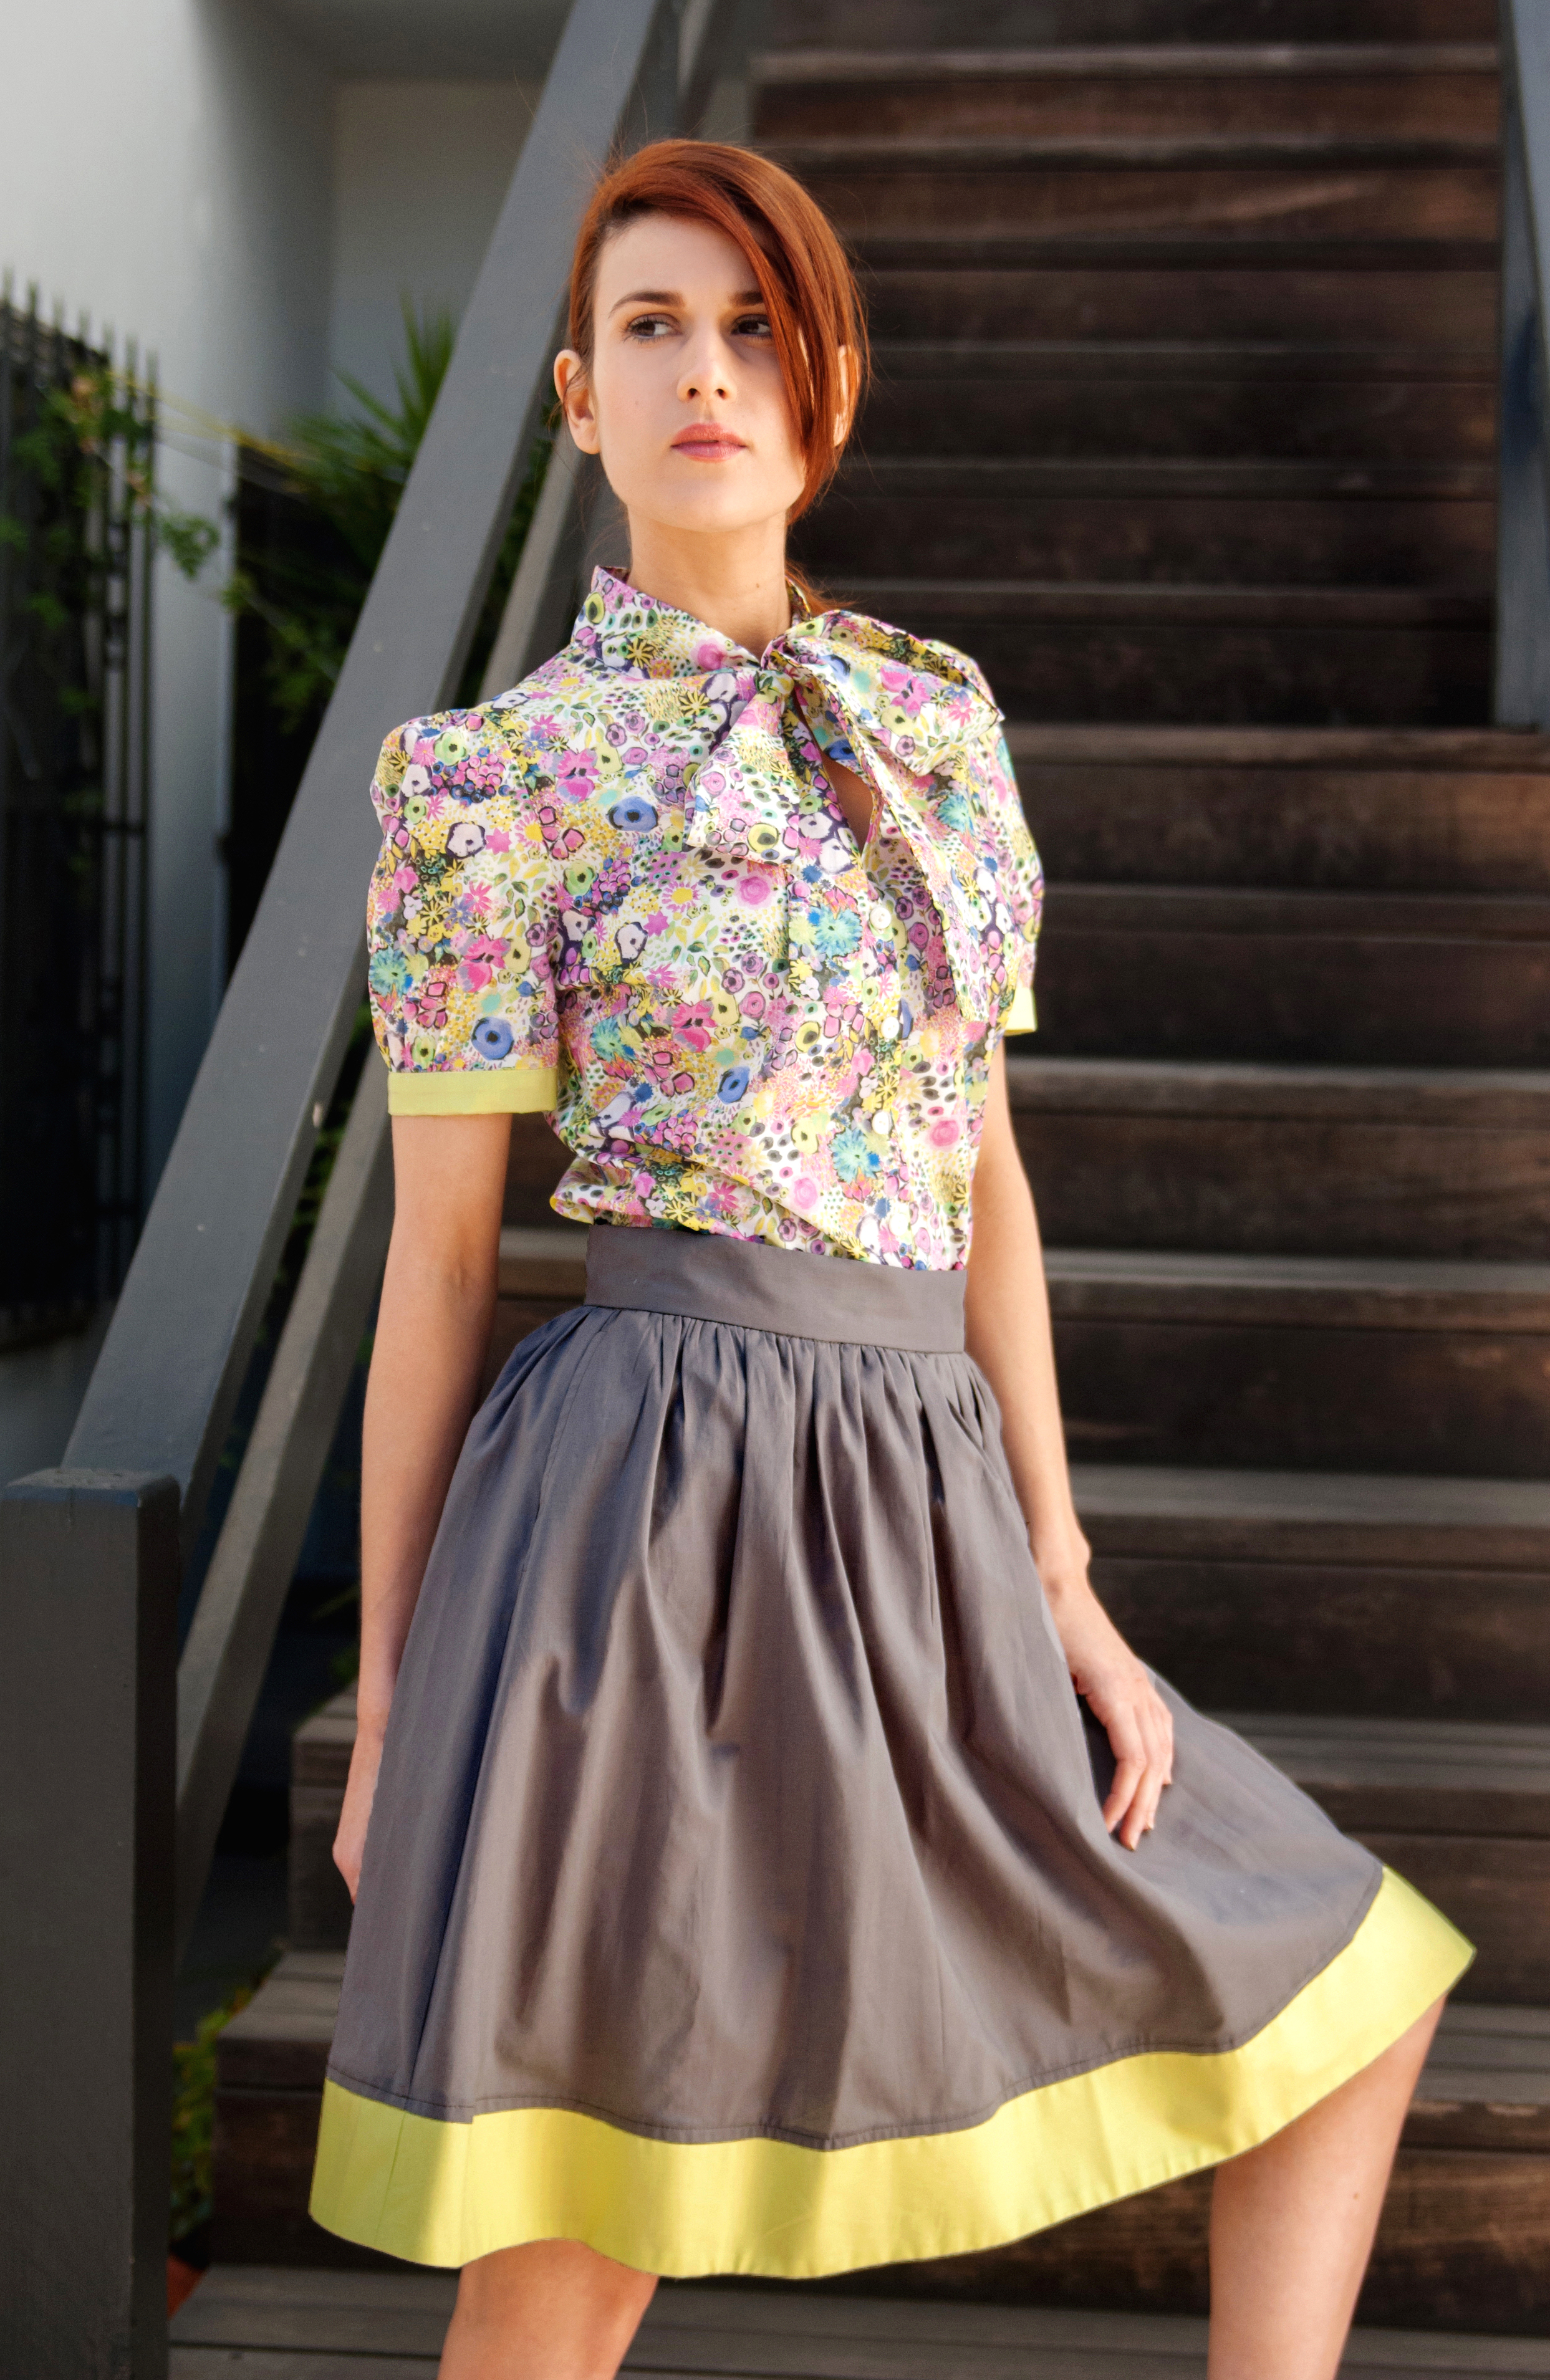 Tie Neck Blouse in Liberty London Print & Dirndl Skirt with Pockets